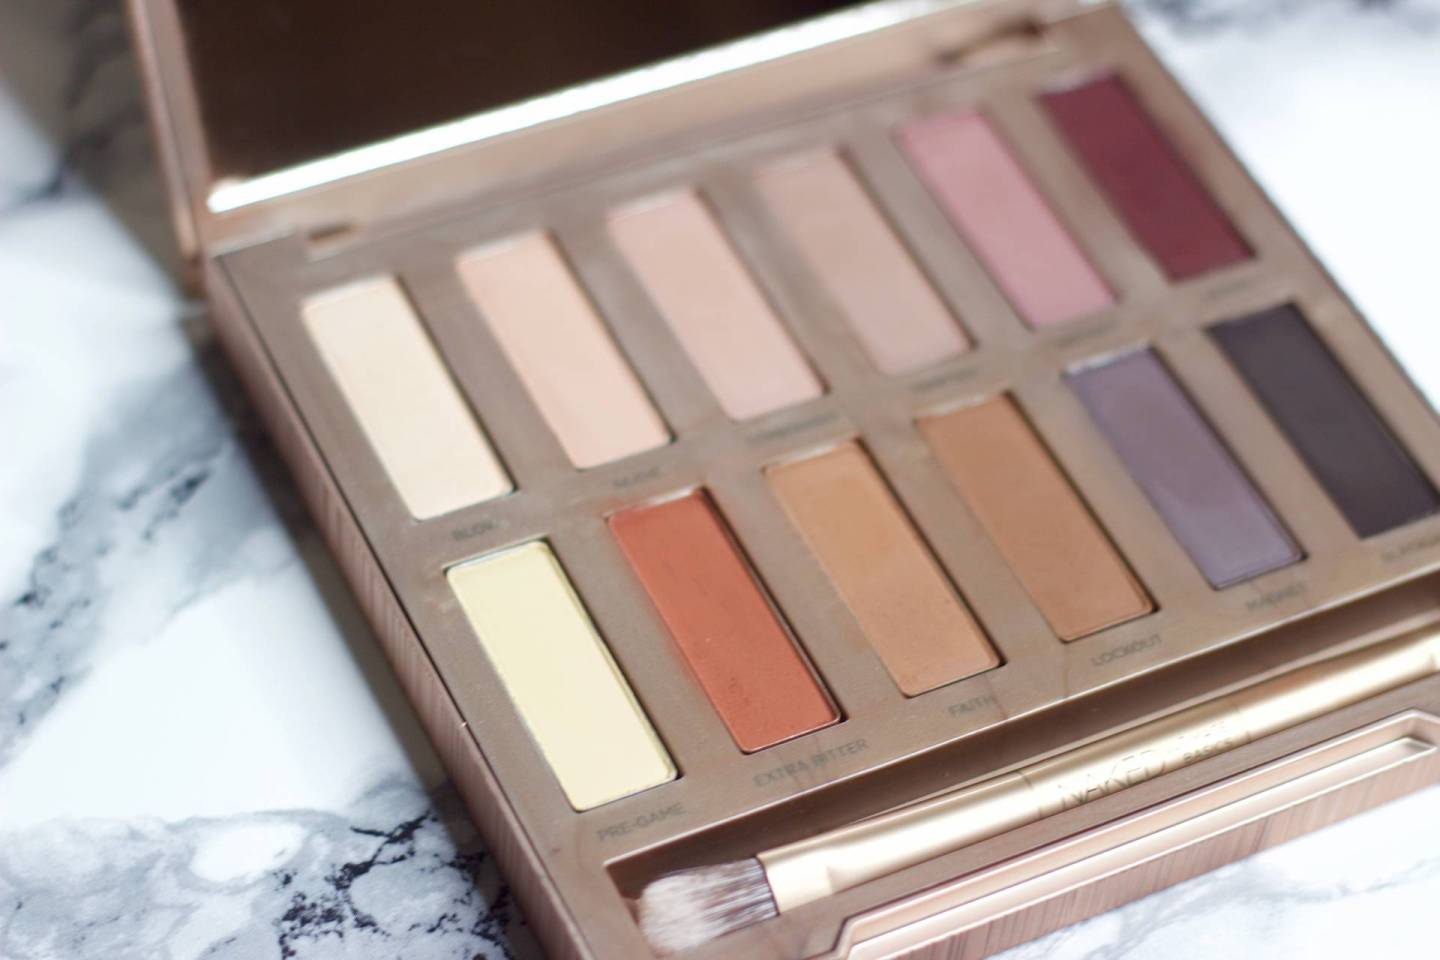 URBAN DECAY Ultimate Basic Palette